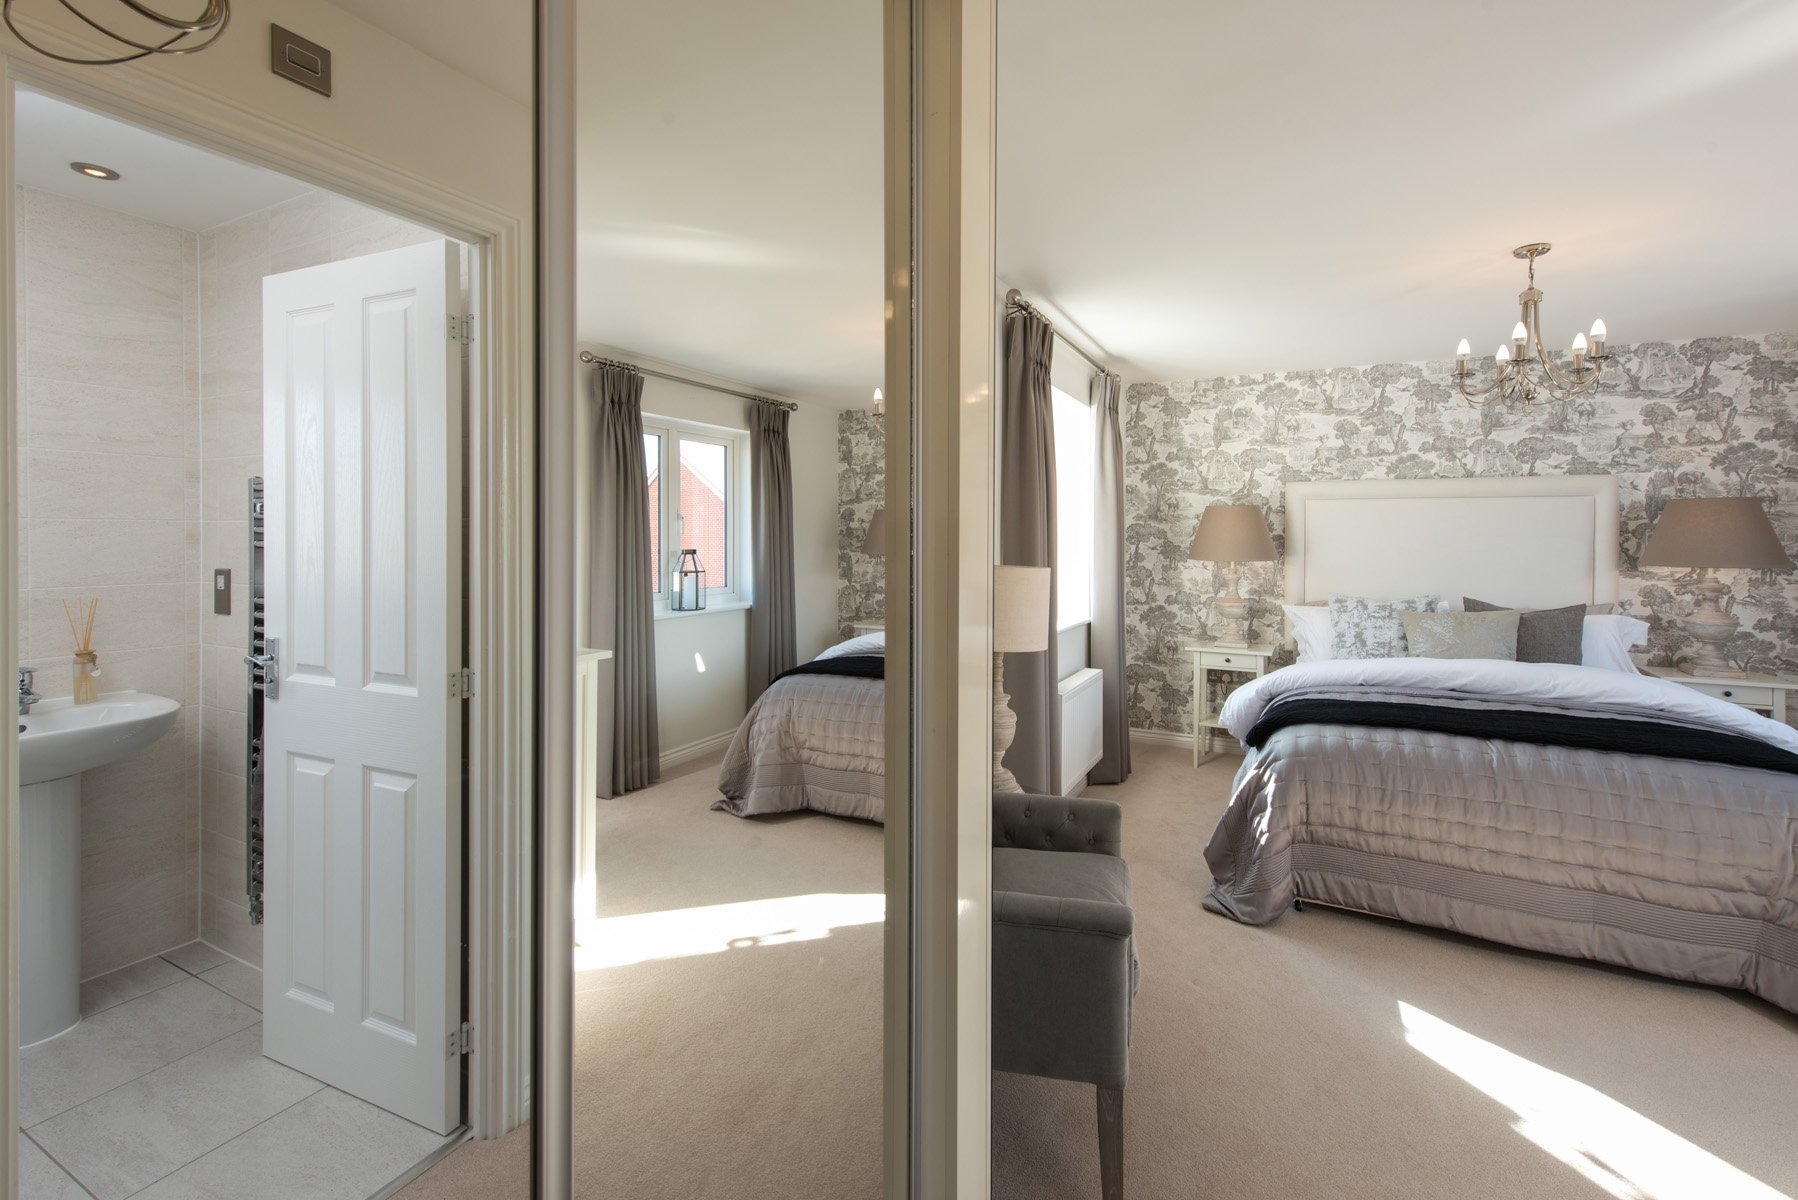 master bedroom showing en suite